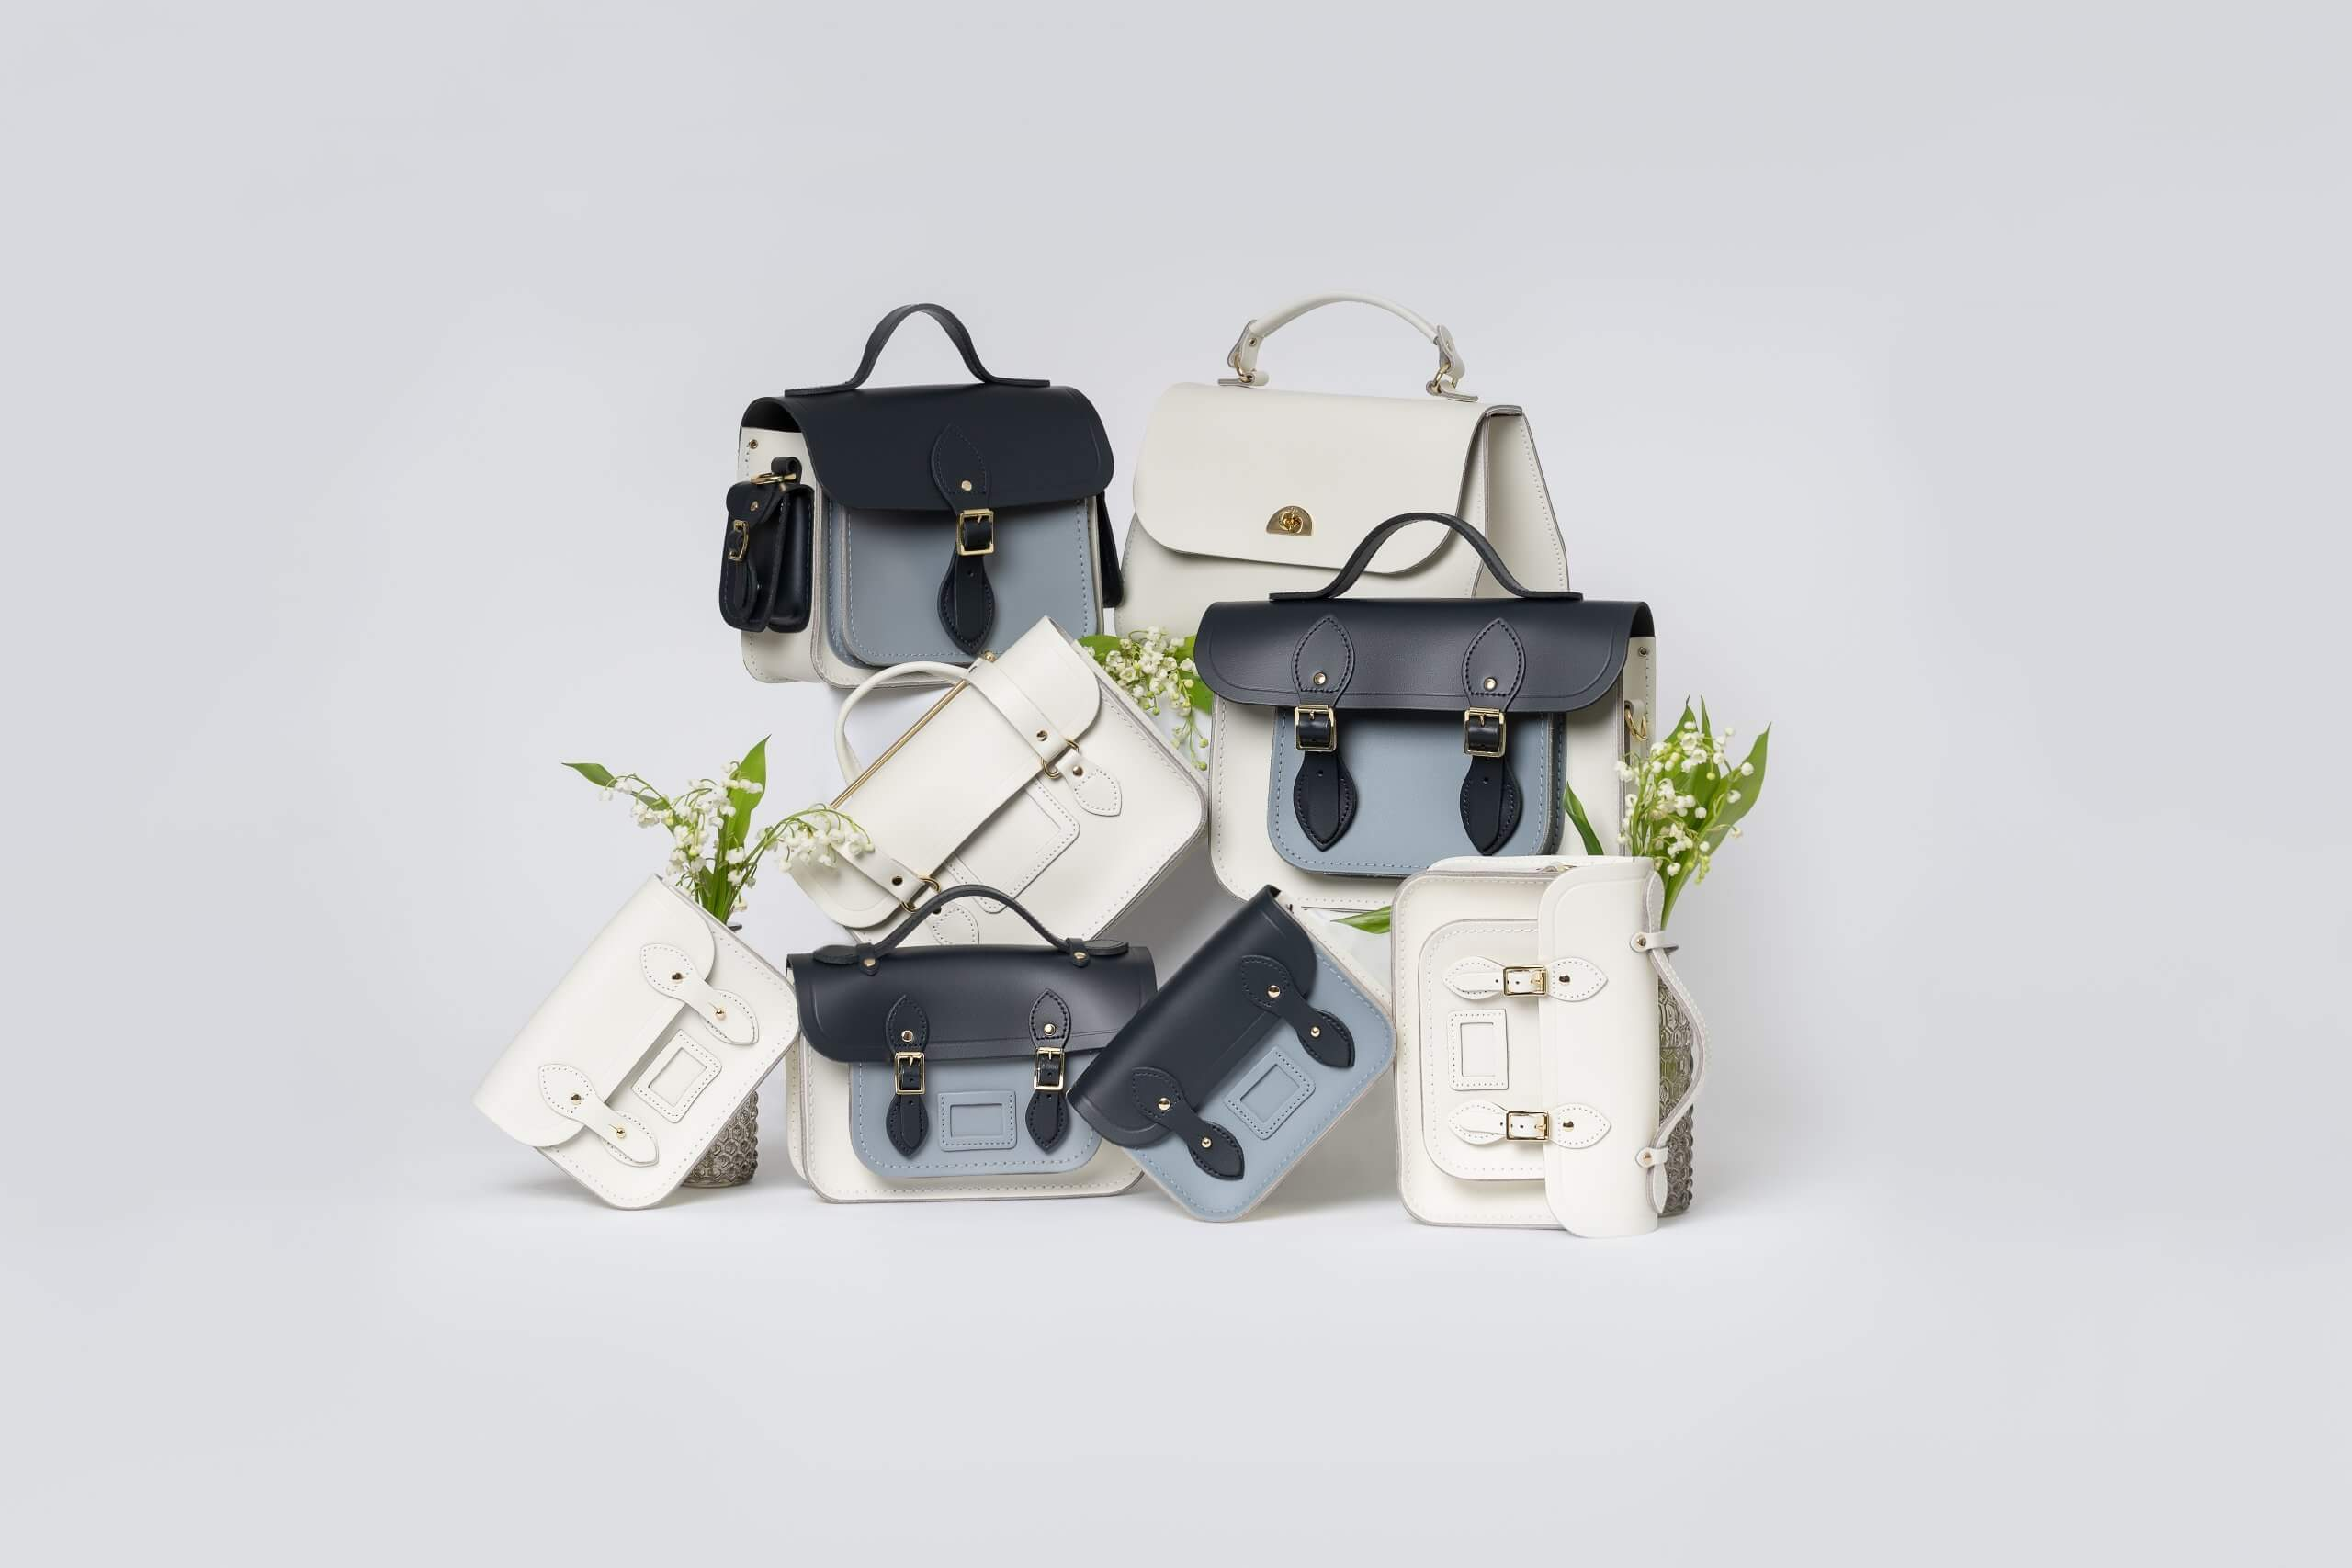 Cambridge Satchel Company Product Photography